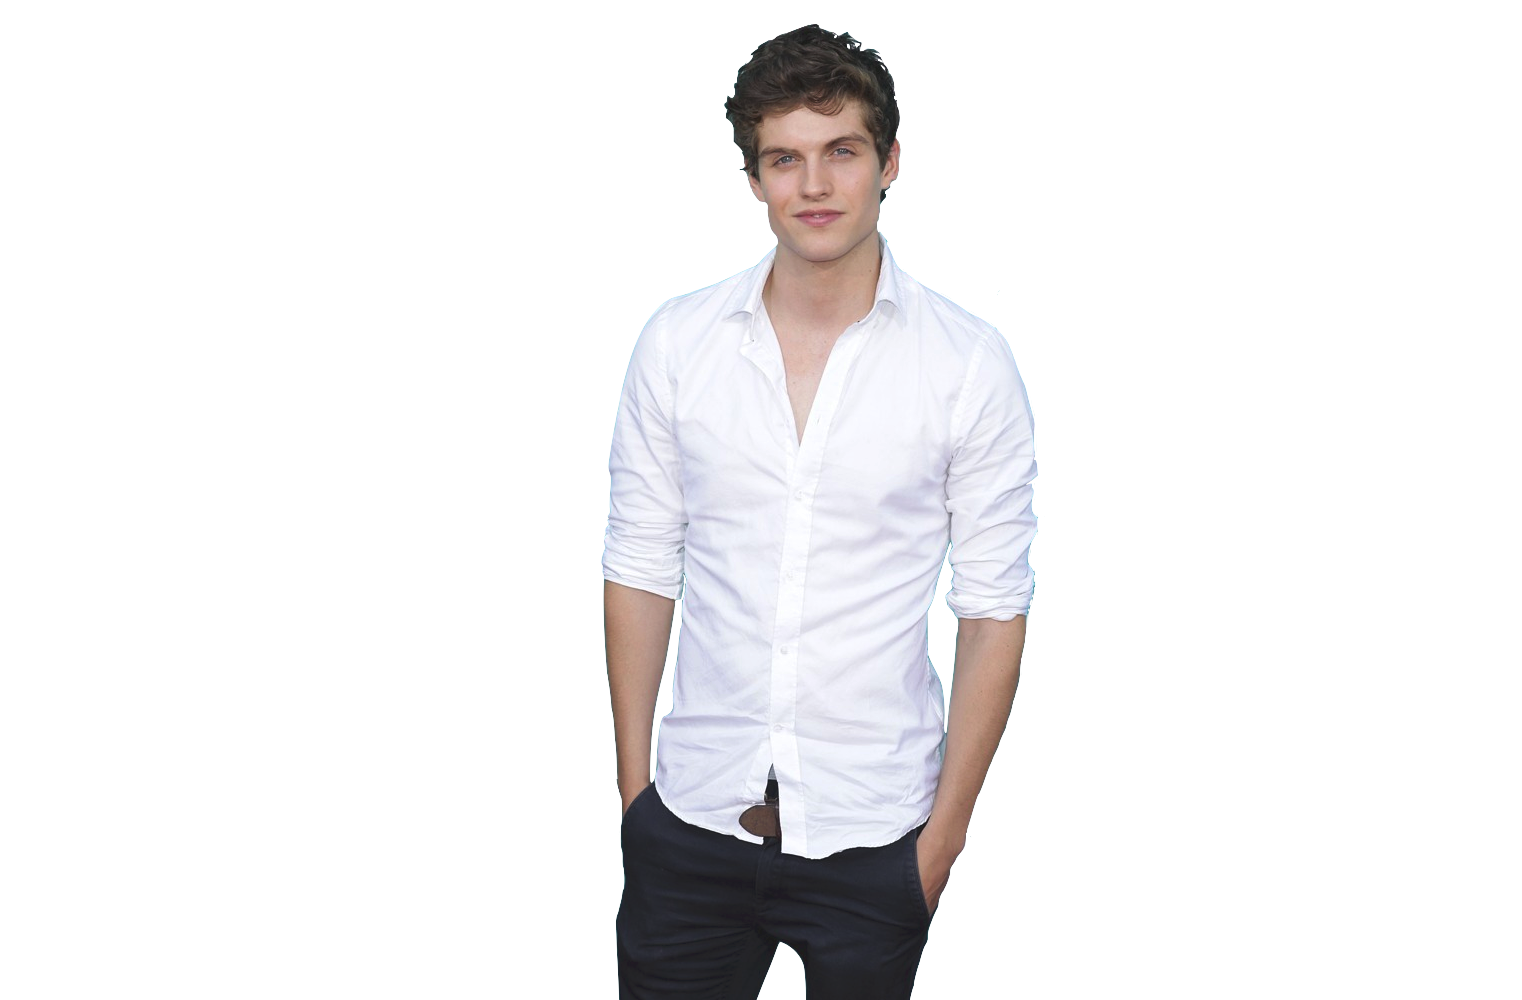 daniel-sharmans-body-measurements-height-weight-age-2